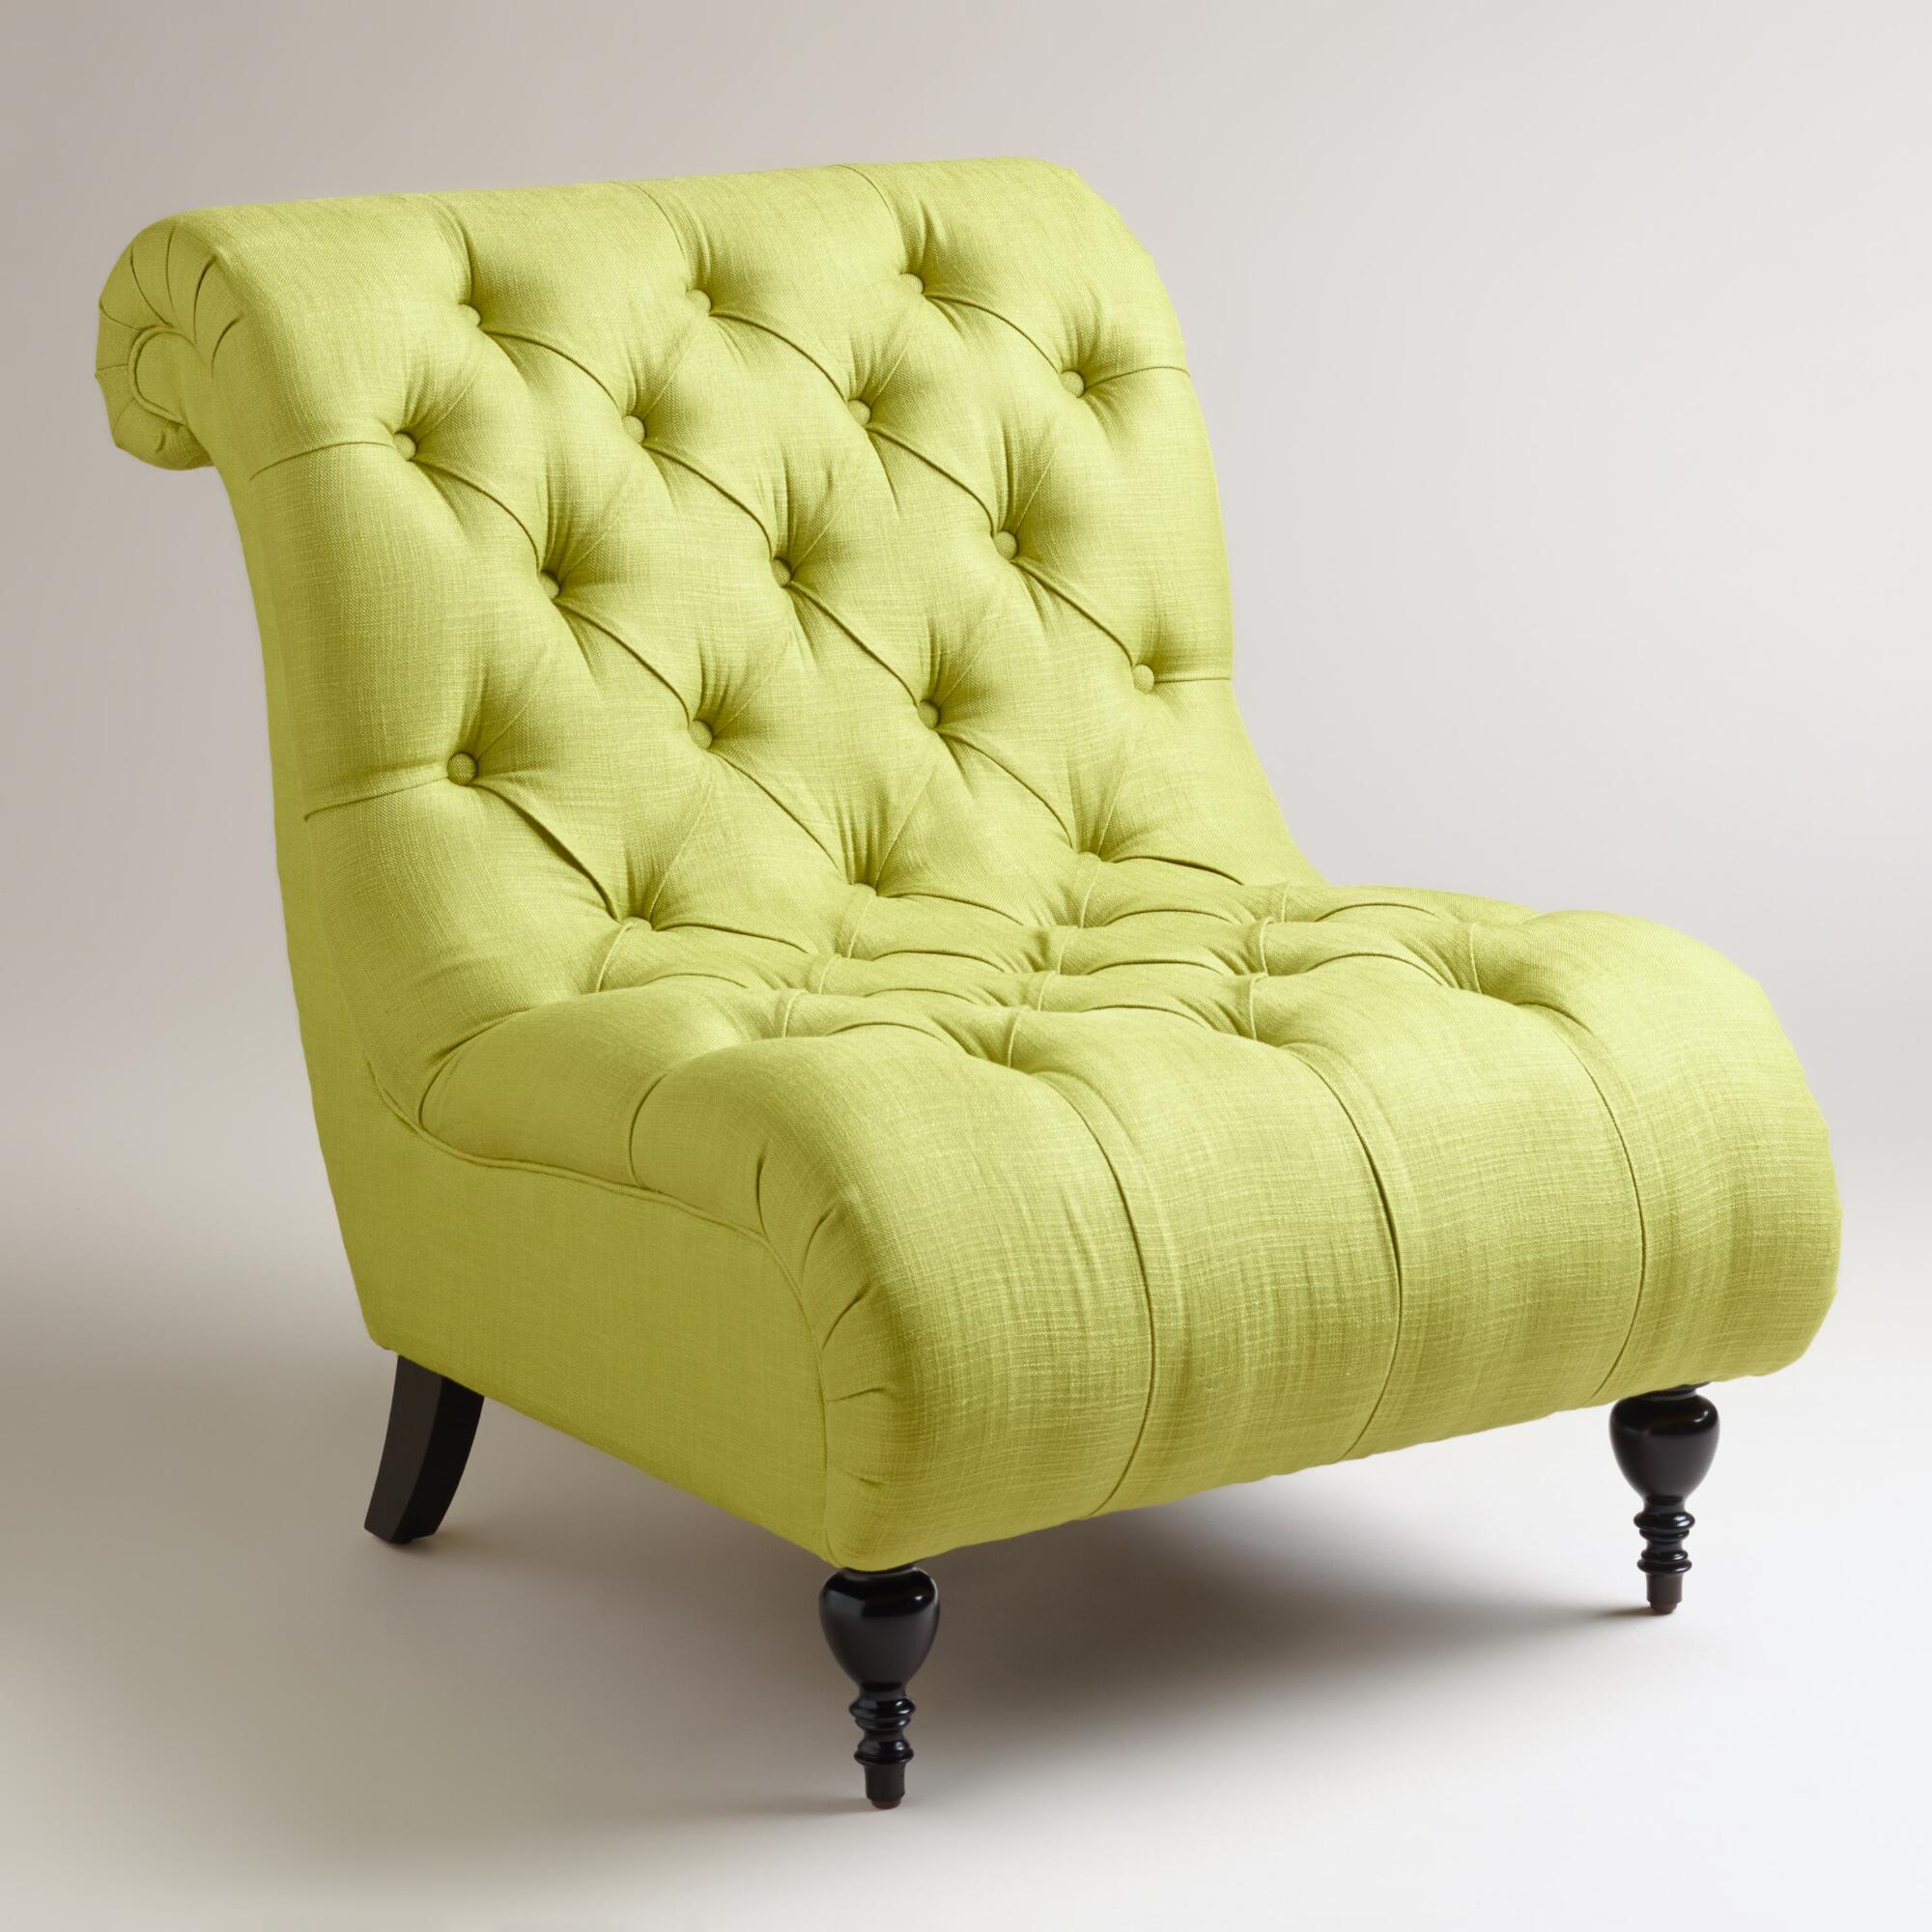 Green Tufted Devon Slipper Chair World Market